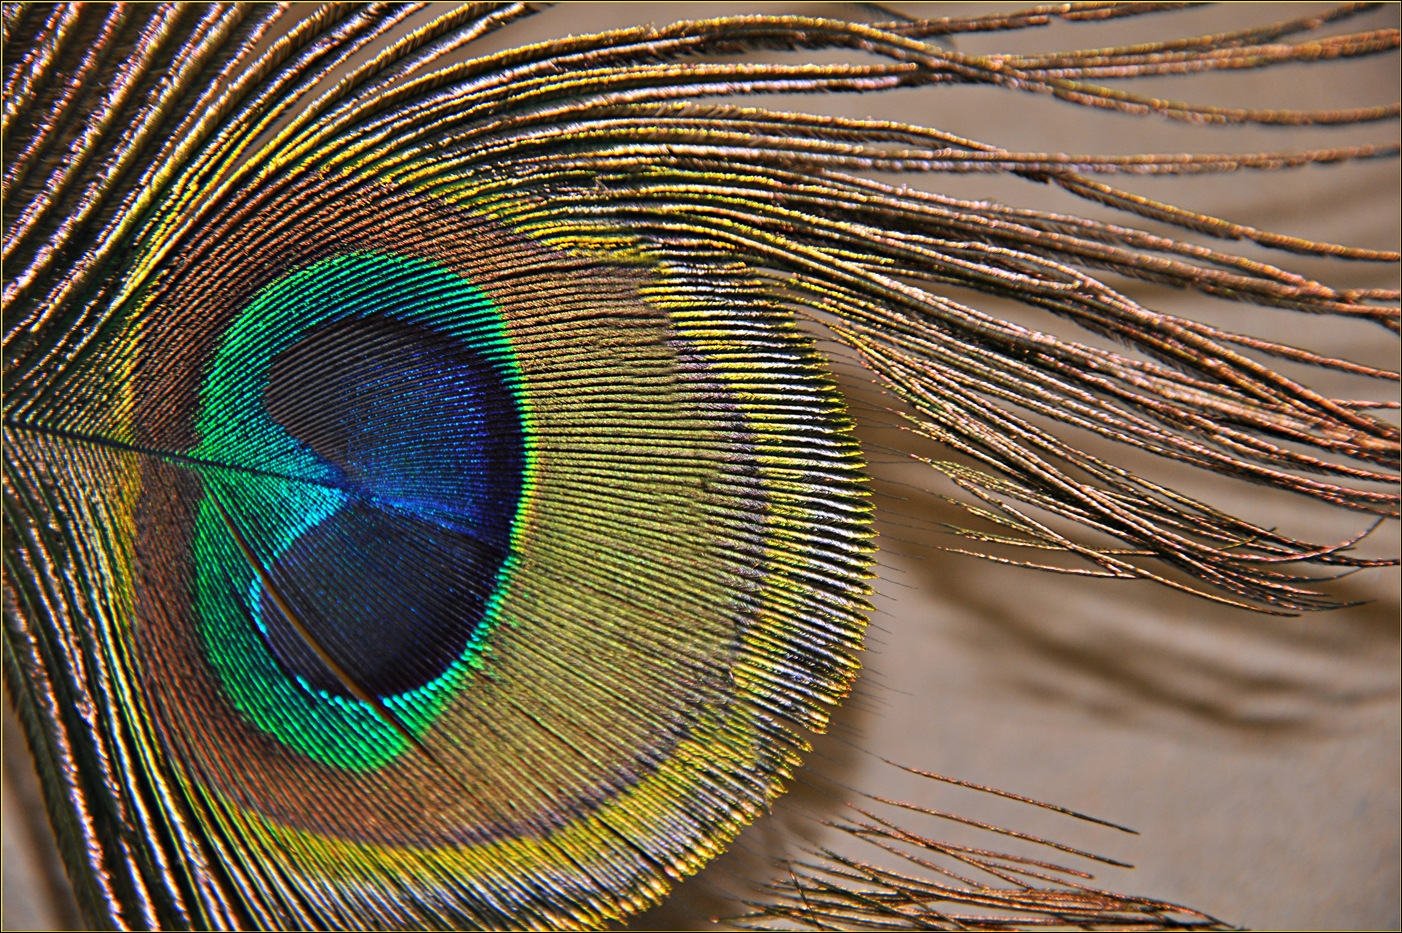 BRIGHT EYE by Rojer Weightman